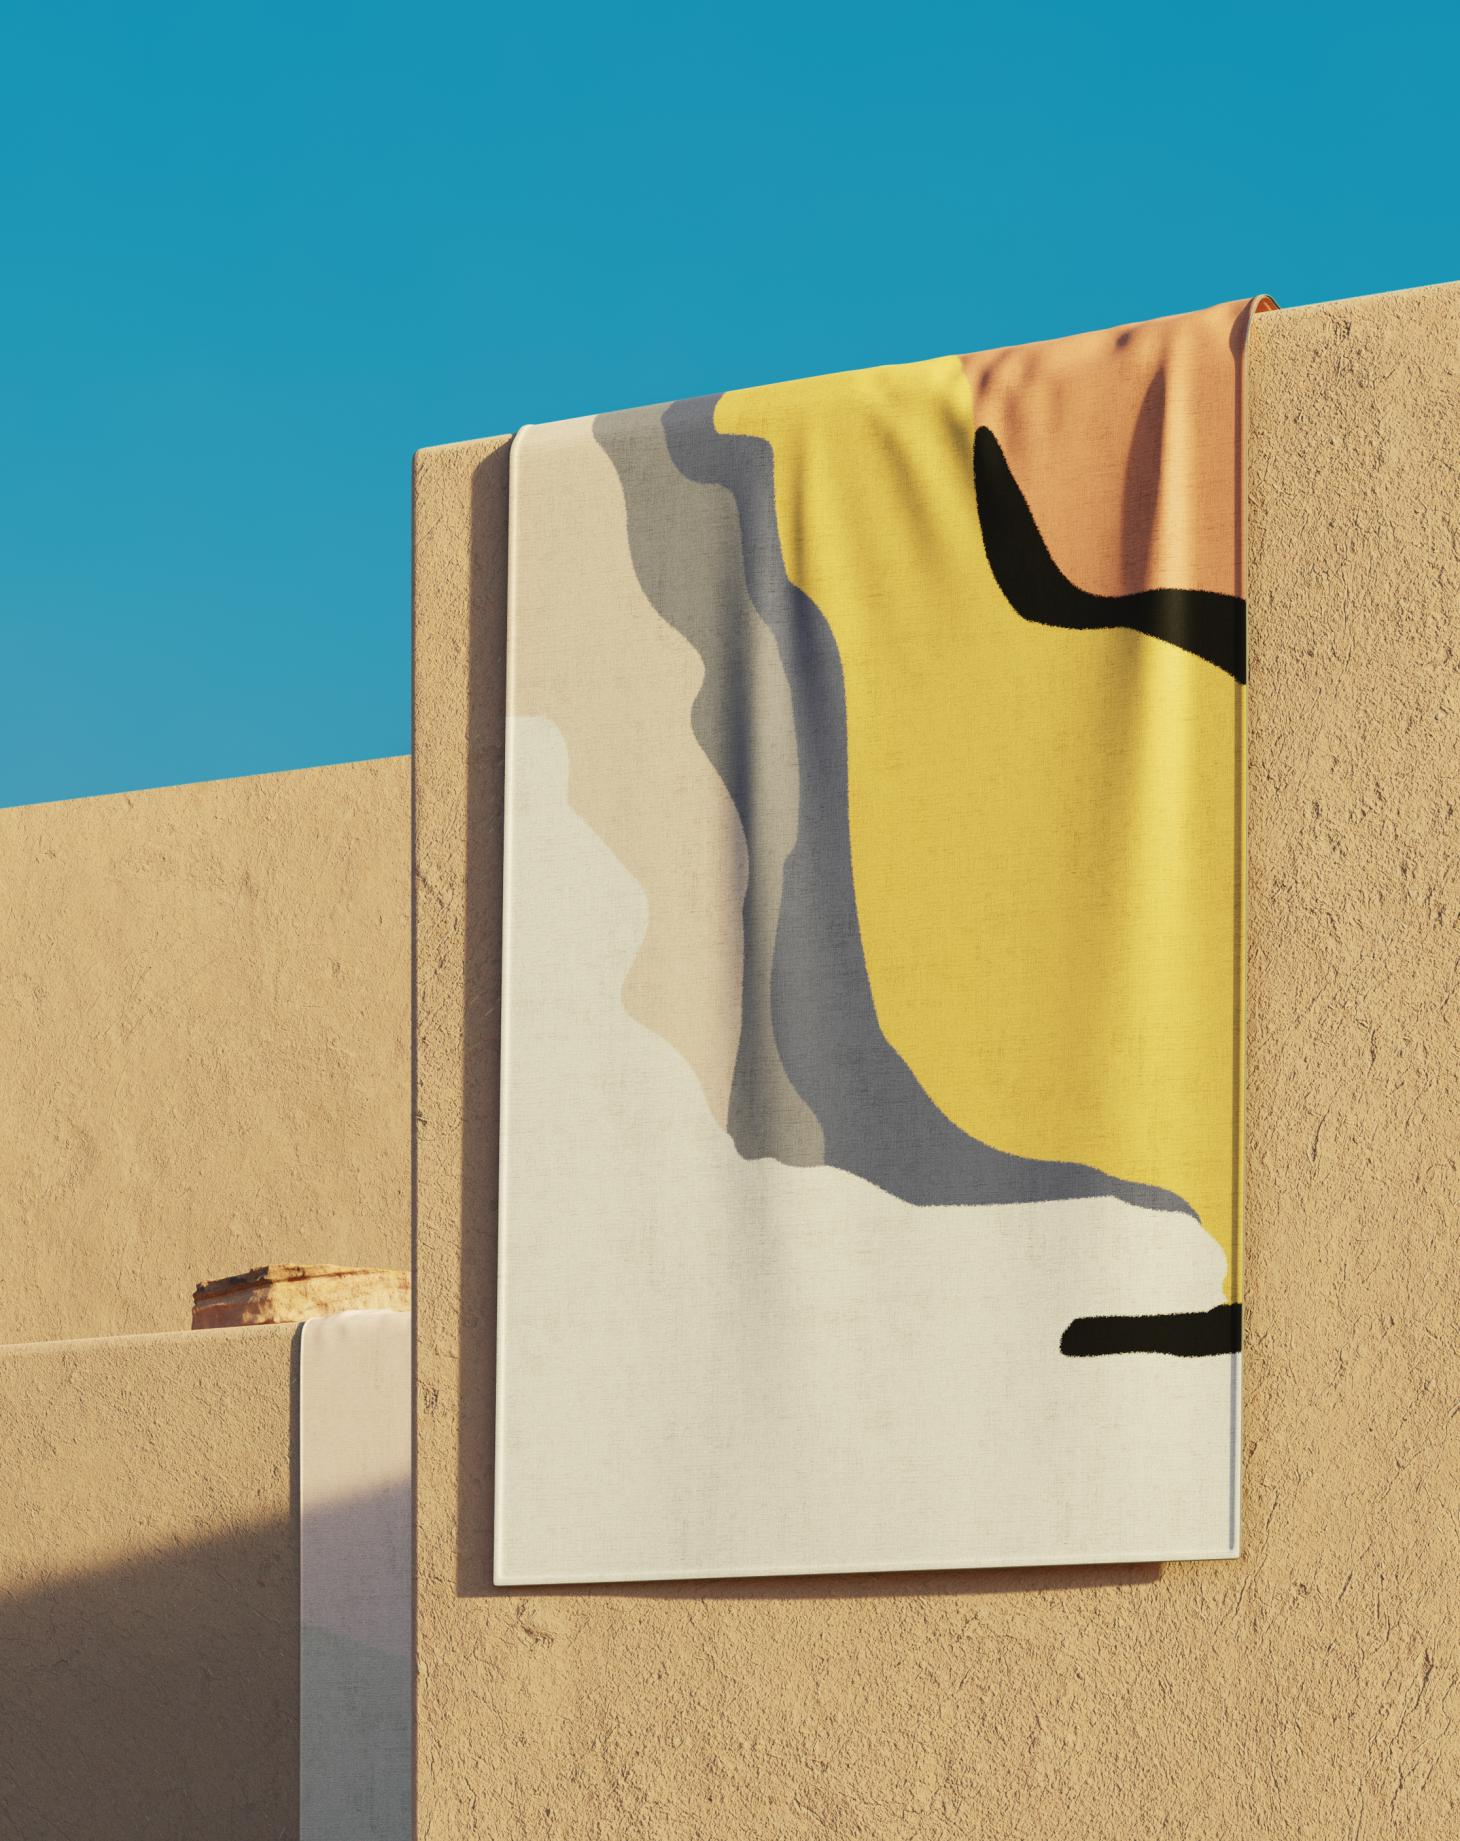 colorful patterned rugs by Tantuvi pictured in a render by Charlotte Taylor depicting desert architecture